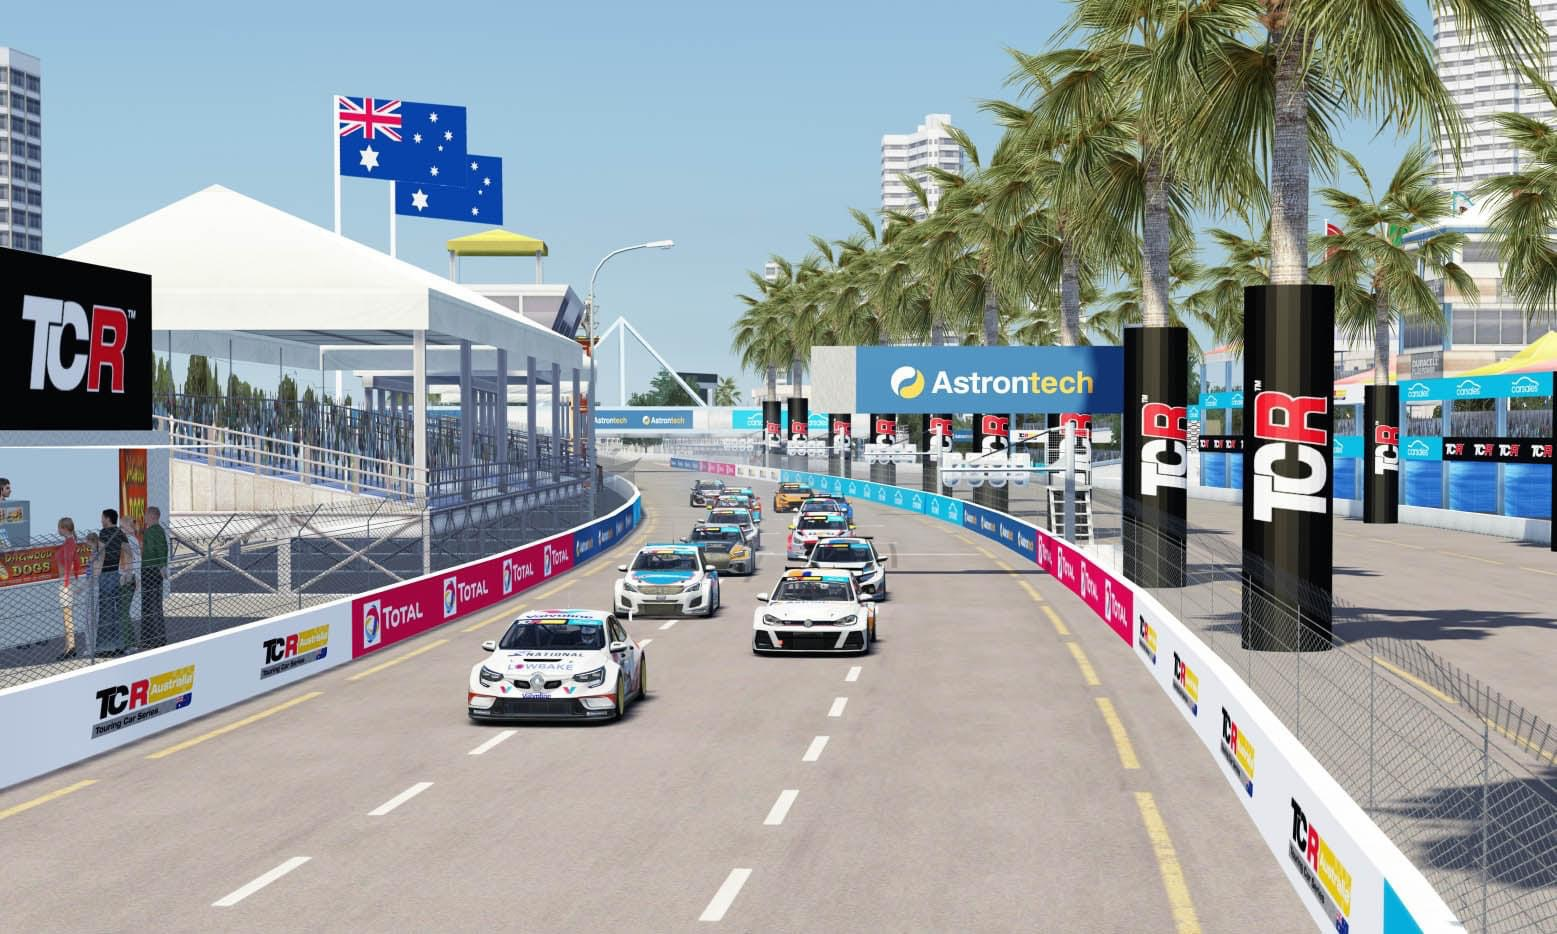 O'KEEFFE CLAIMS VICTORY AT SURFERS PARADISE